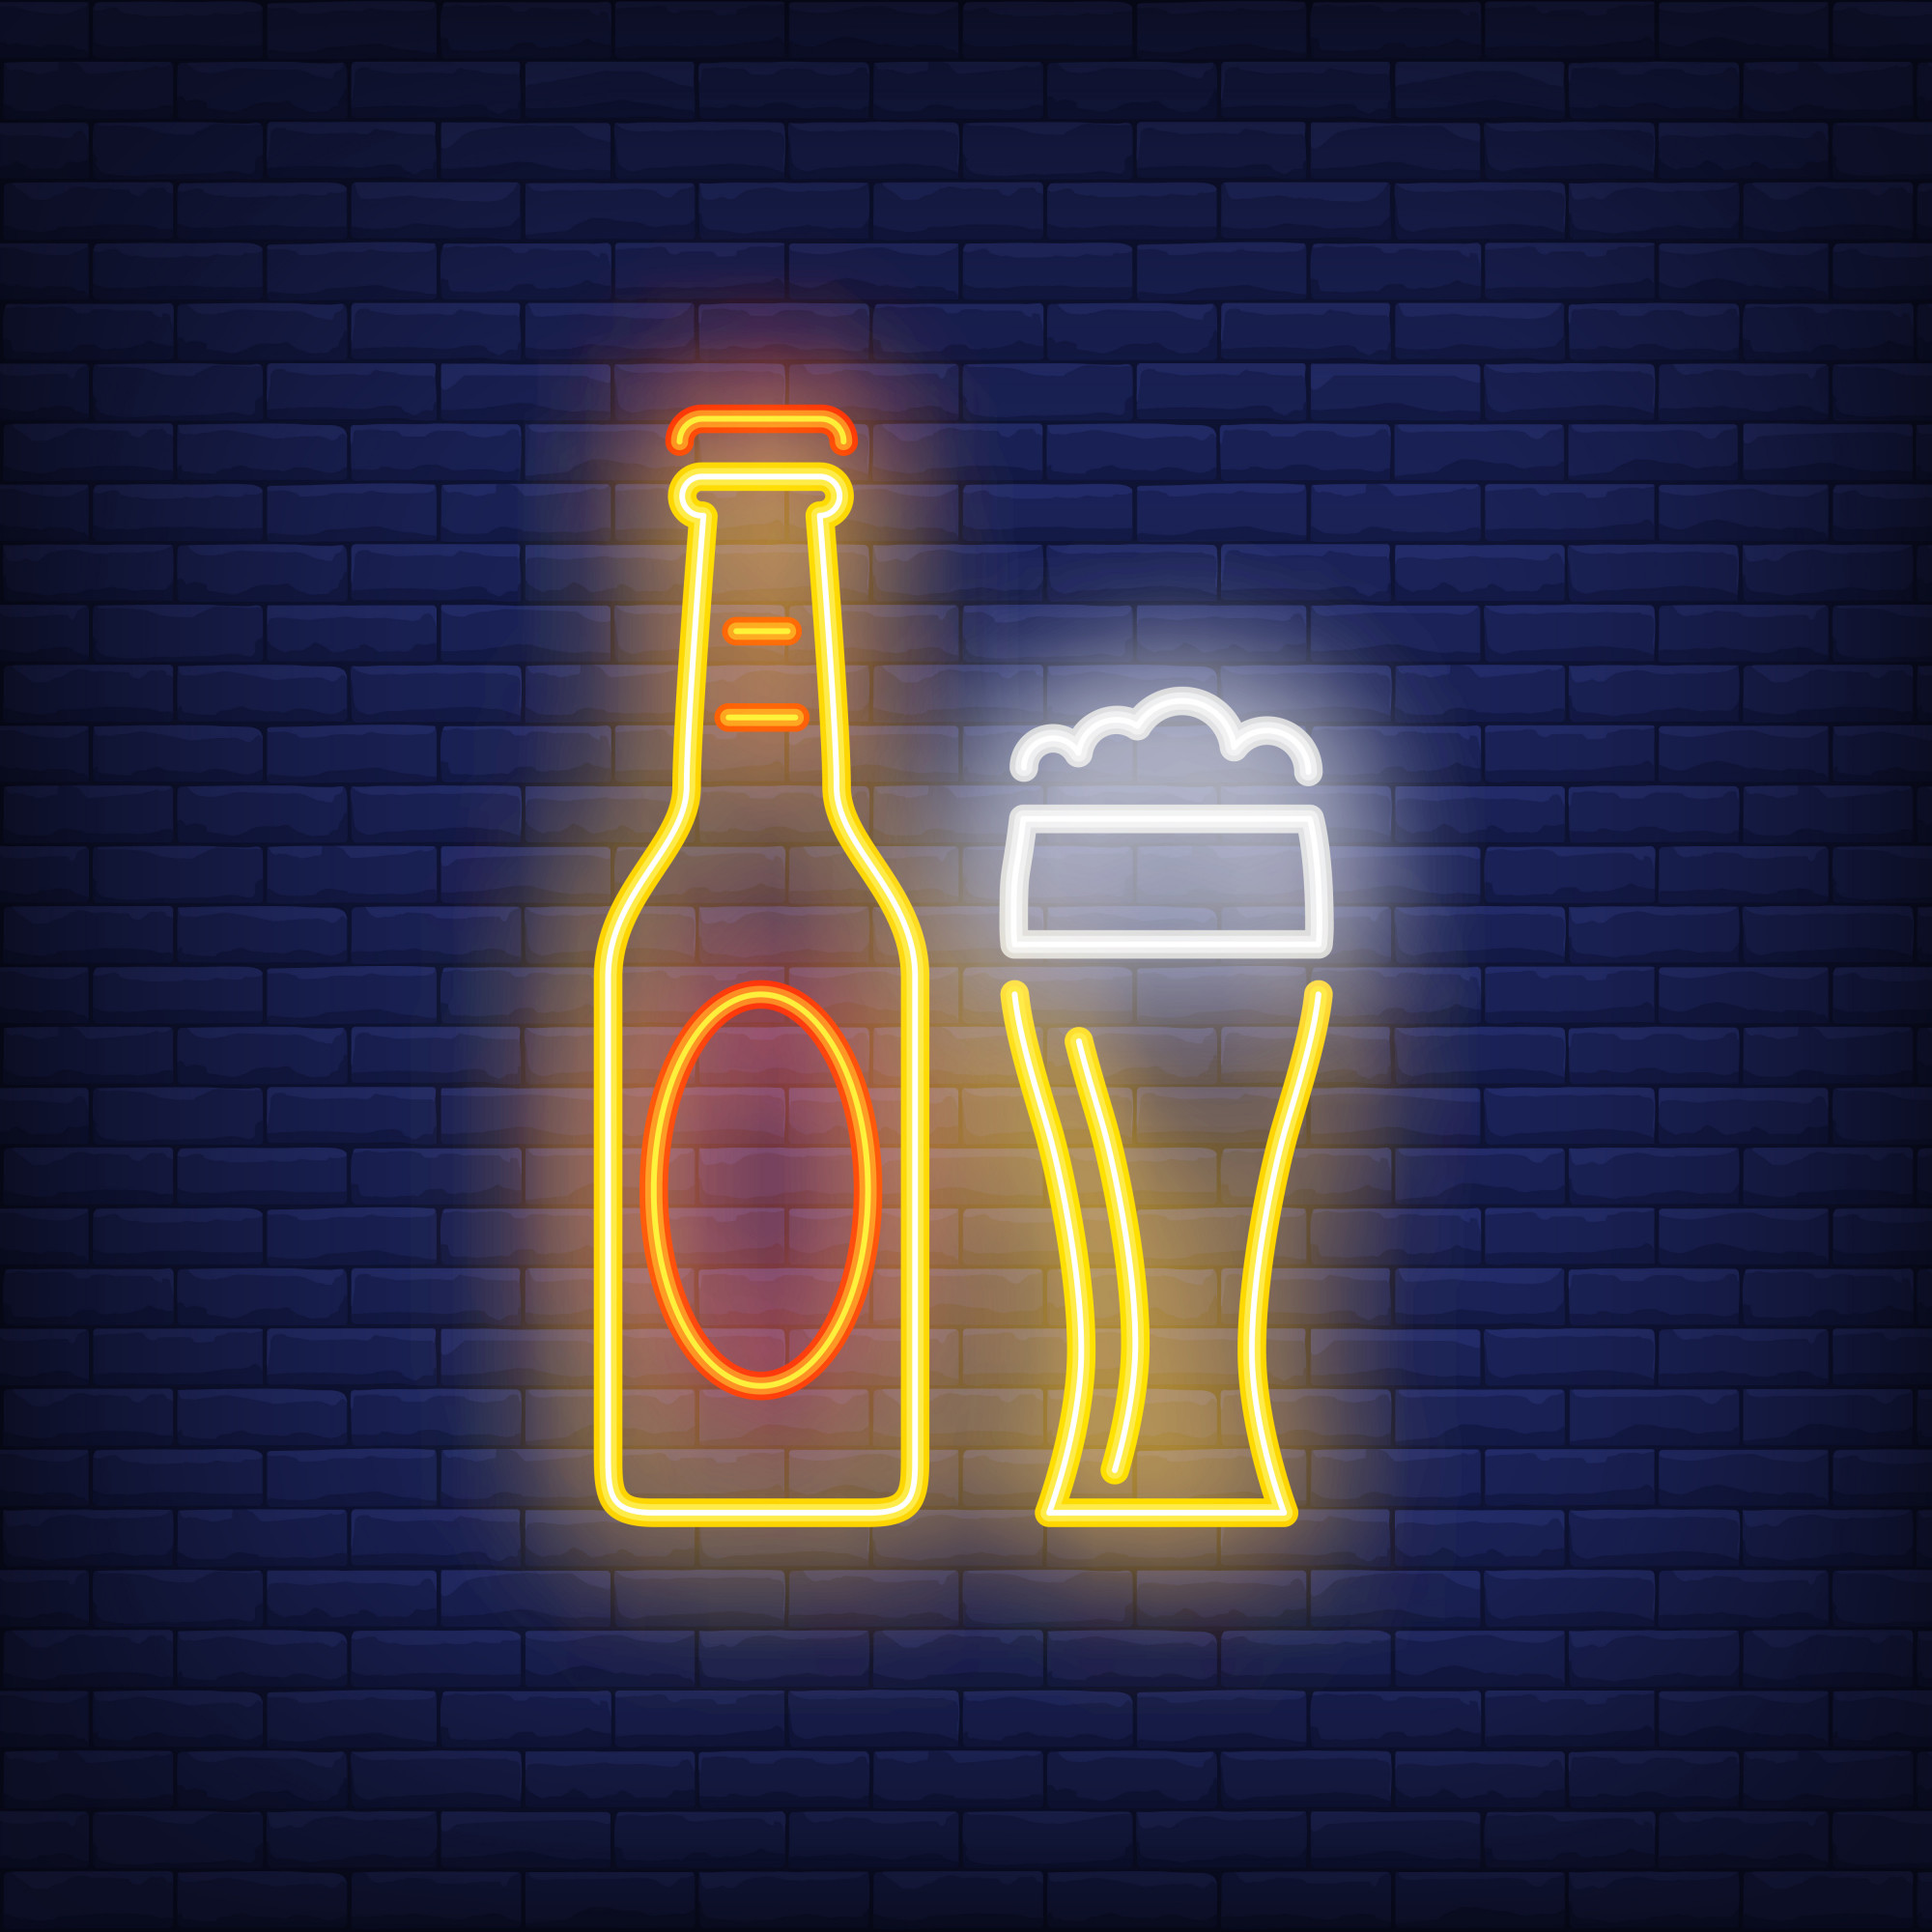 Beer bottle and glass on brick background. Neon style. Bar, pub, alcoholic beverage